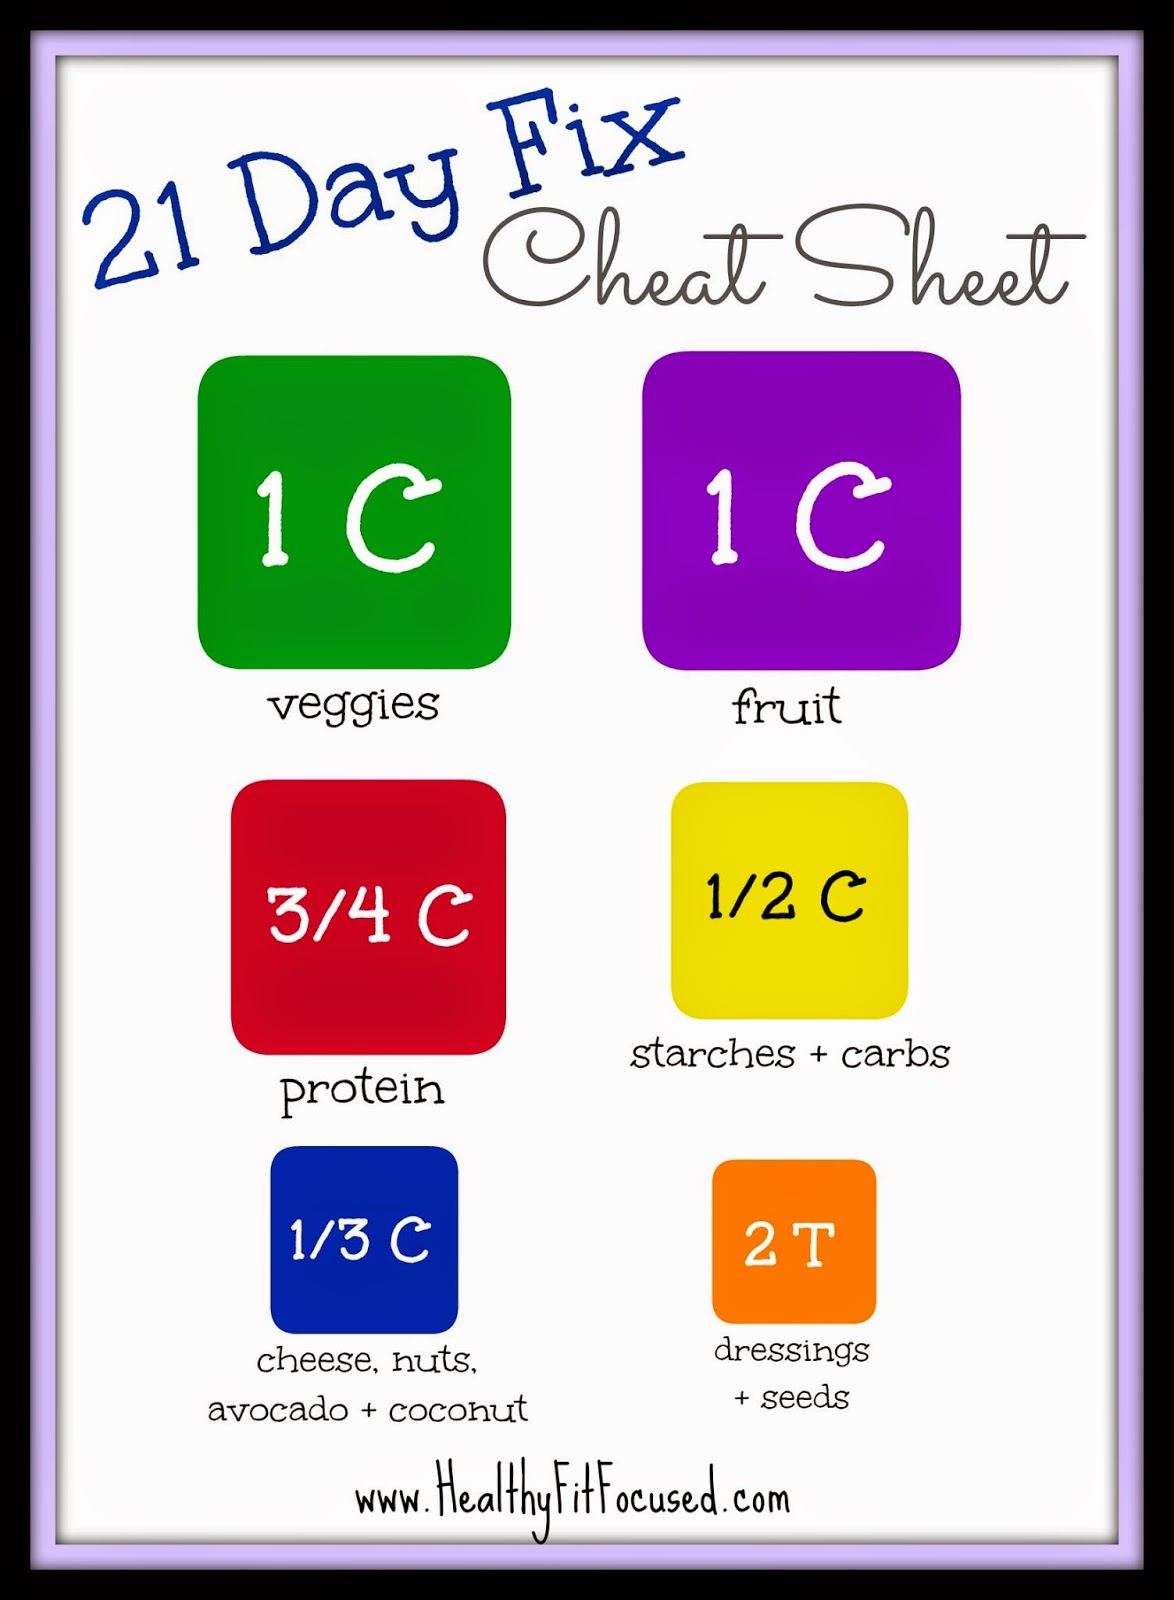 picture about 21 Day Fix Workout Schedule Printable referred to as Nutritious, In shape, and Concentrated: 21 Working day Repair Cheat Sheets